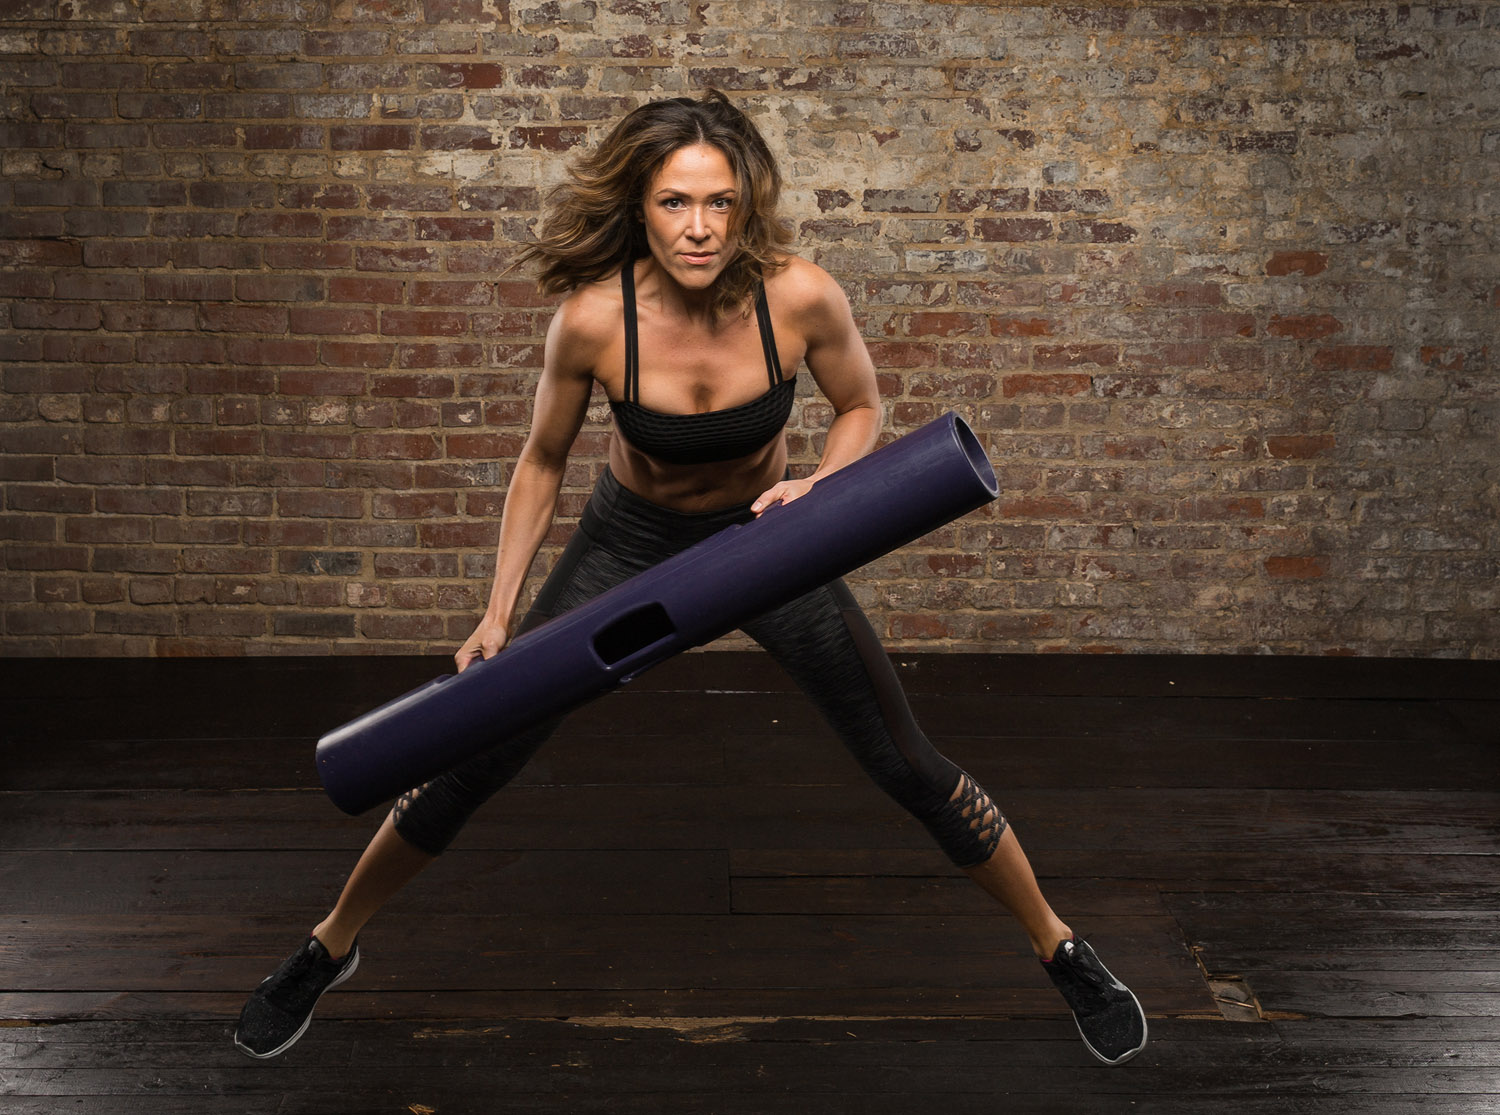 atlanta commercial photography editorial photographer - fitness trainer   101.jpg